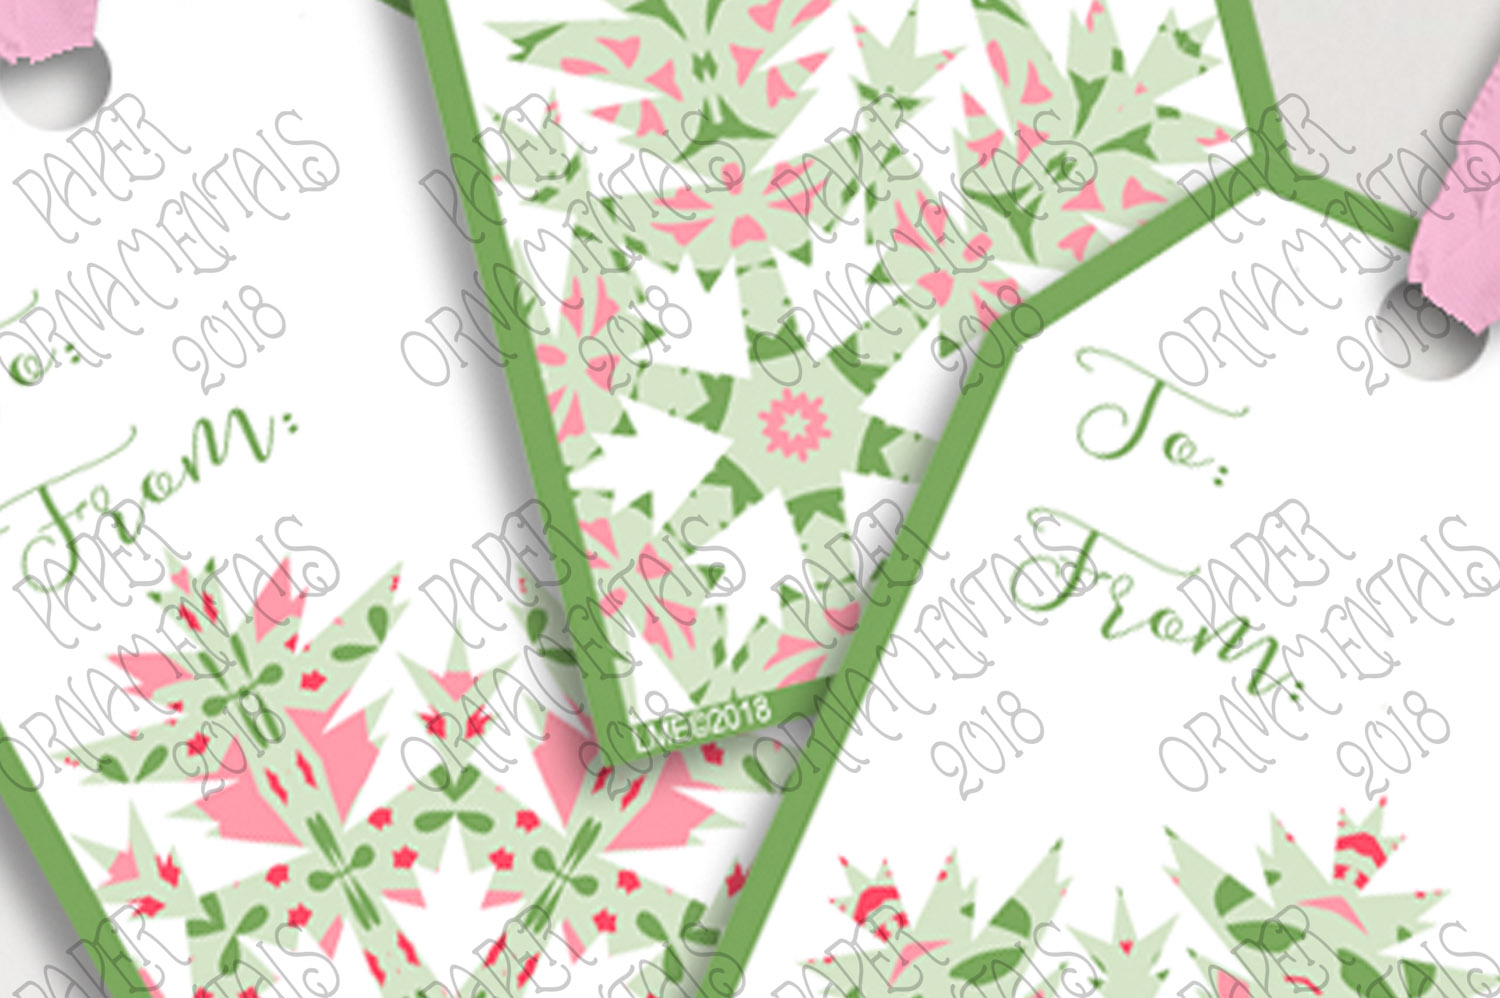 Printable Holiday Gift Tags, Snowflake To/From Tags example image 3